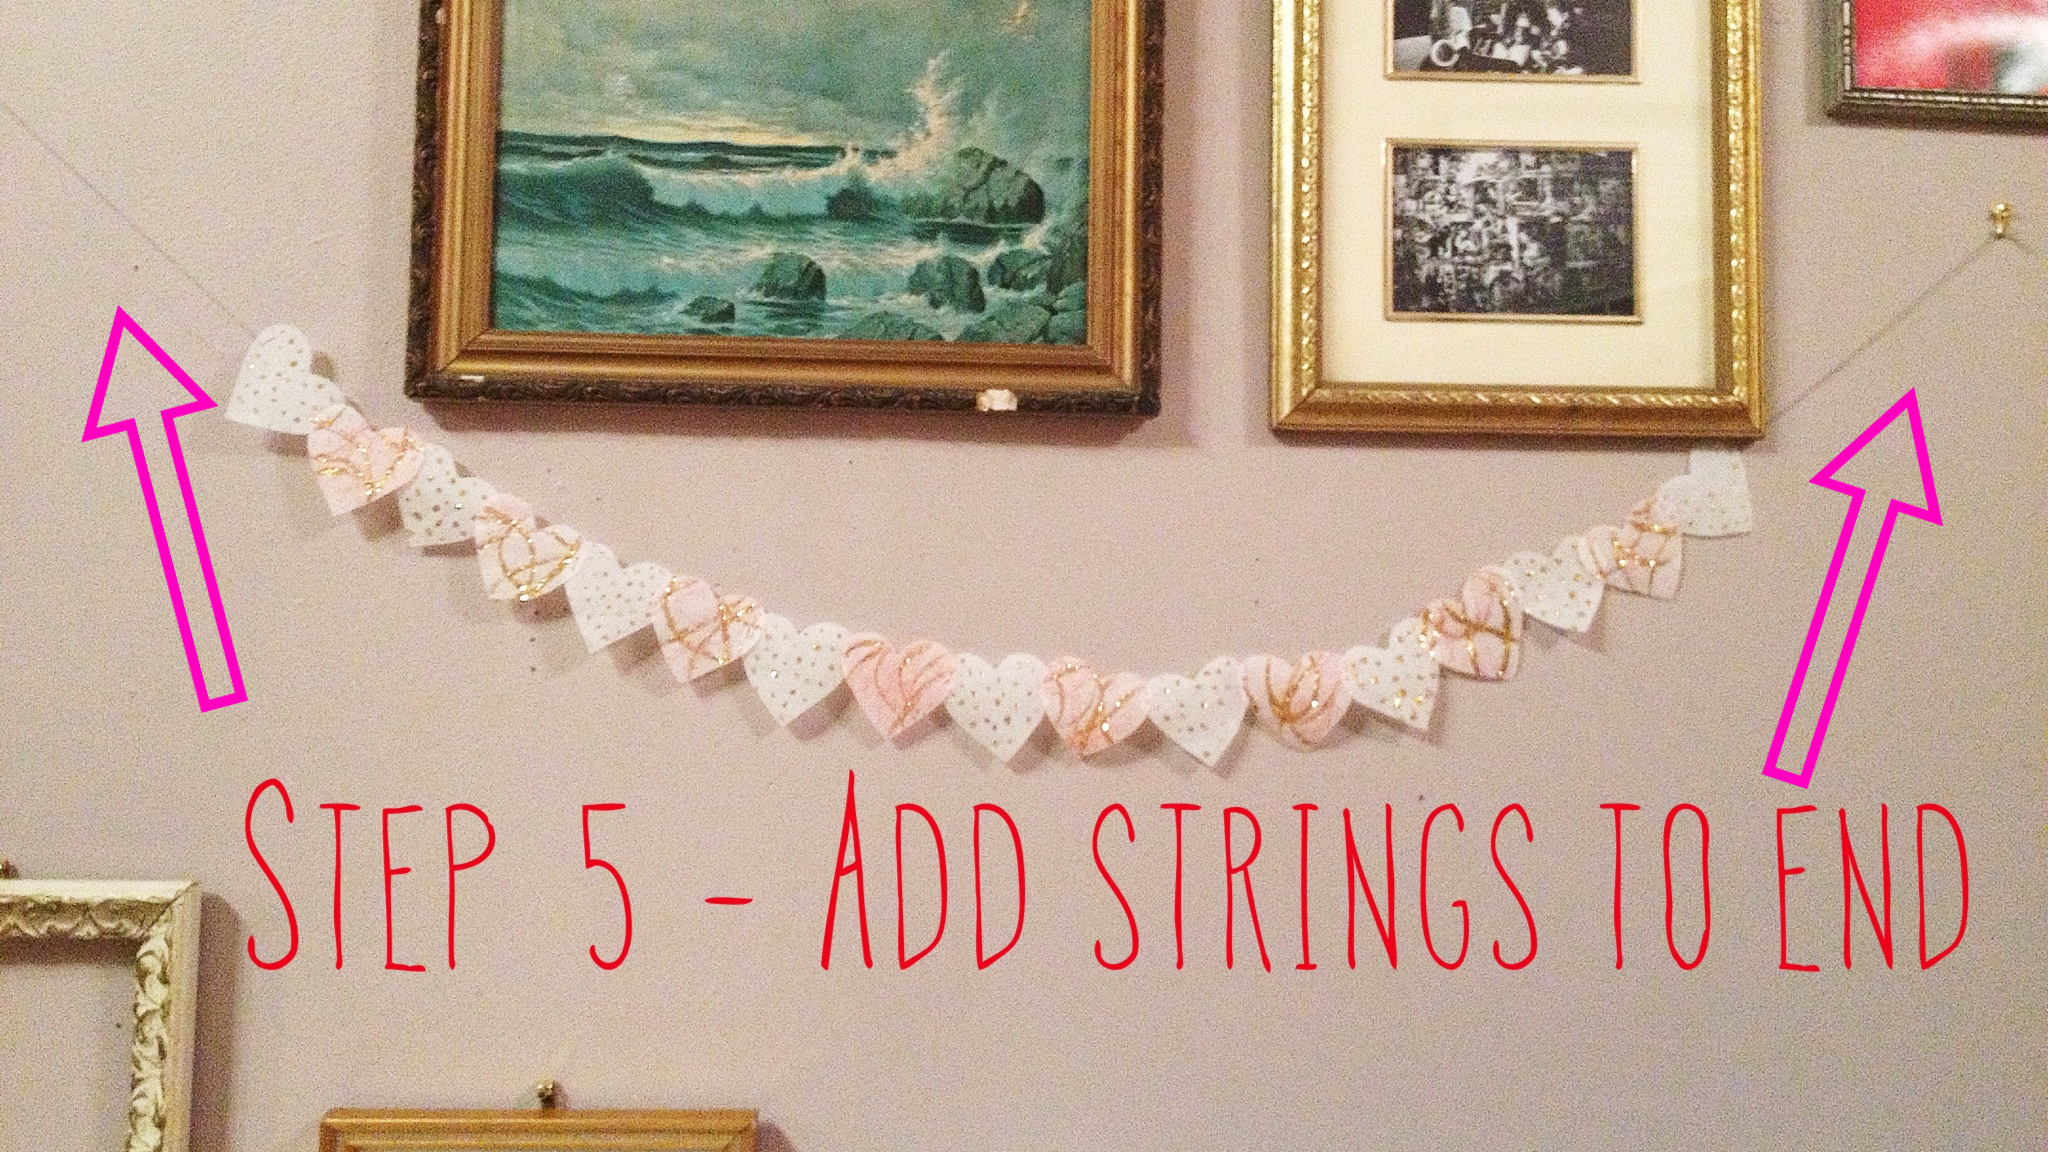 Step 5 - Add strings to end - DIY paper heart garland